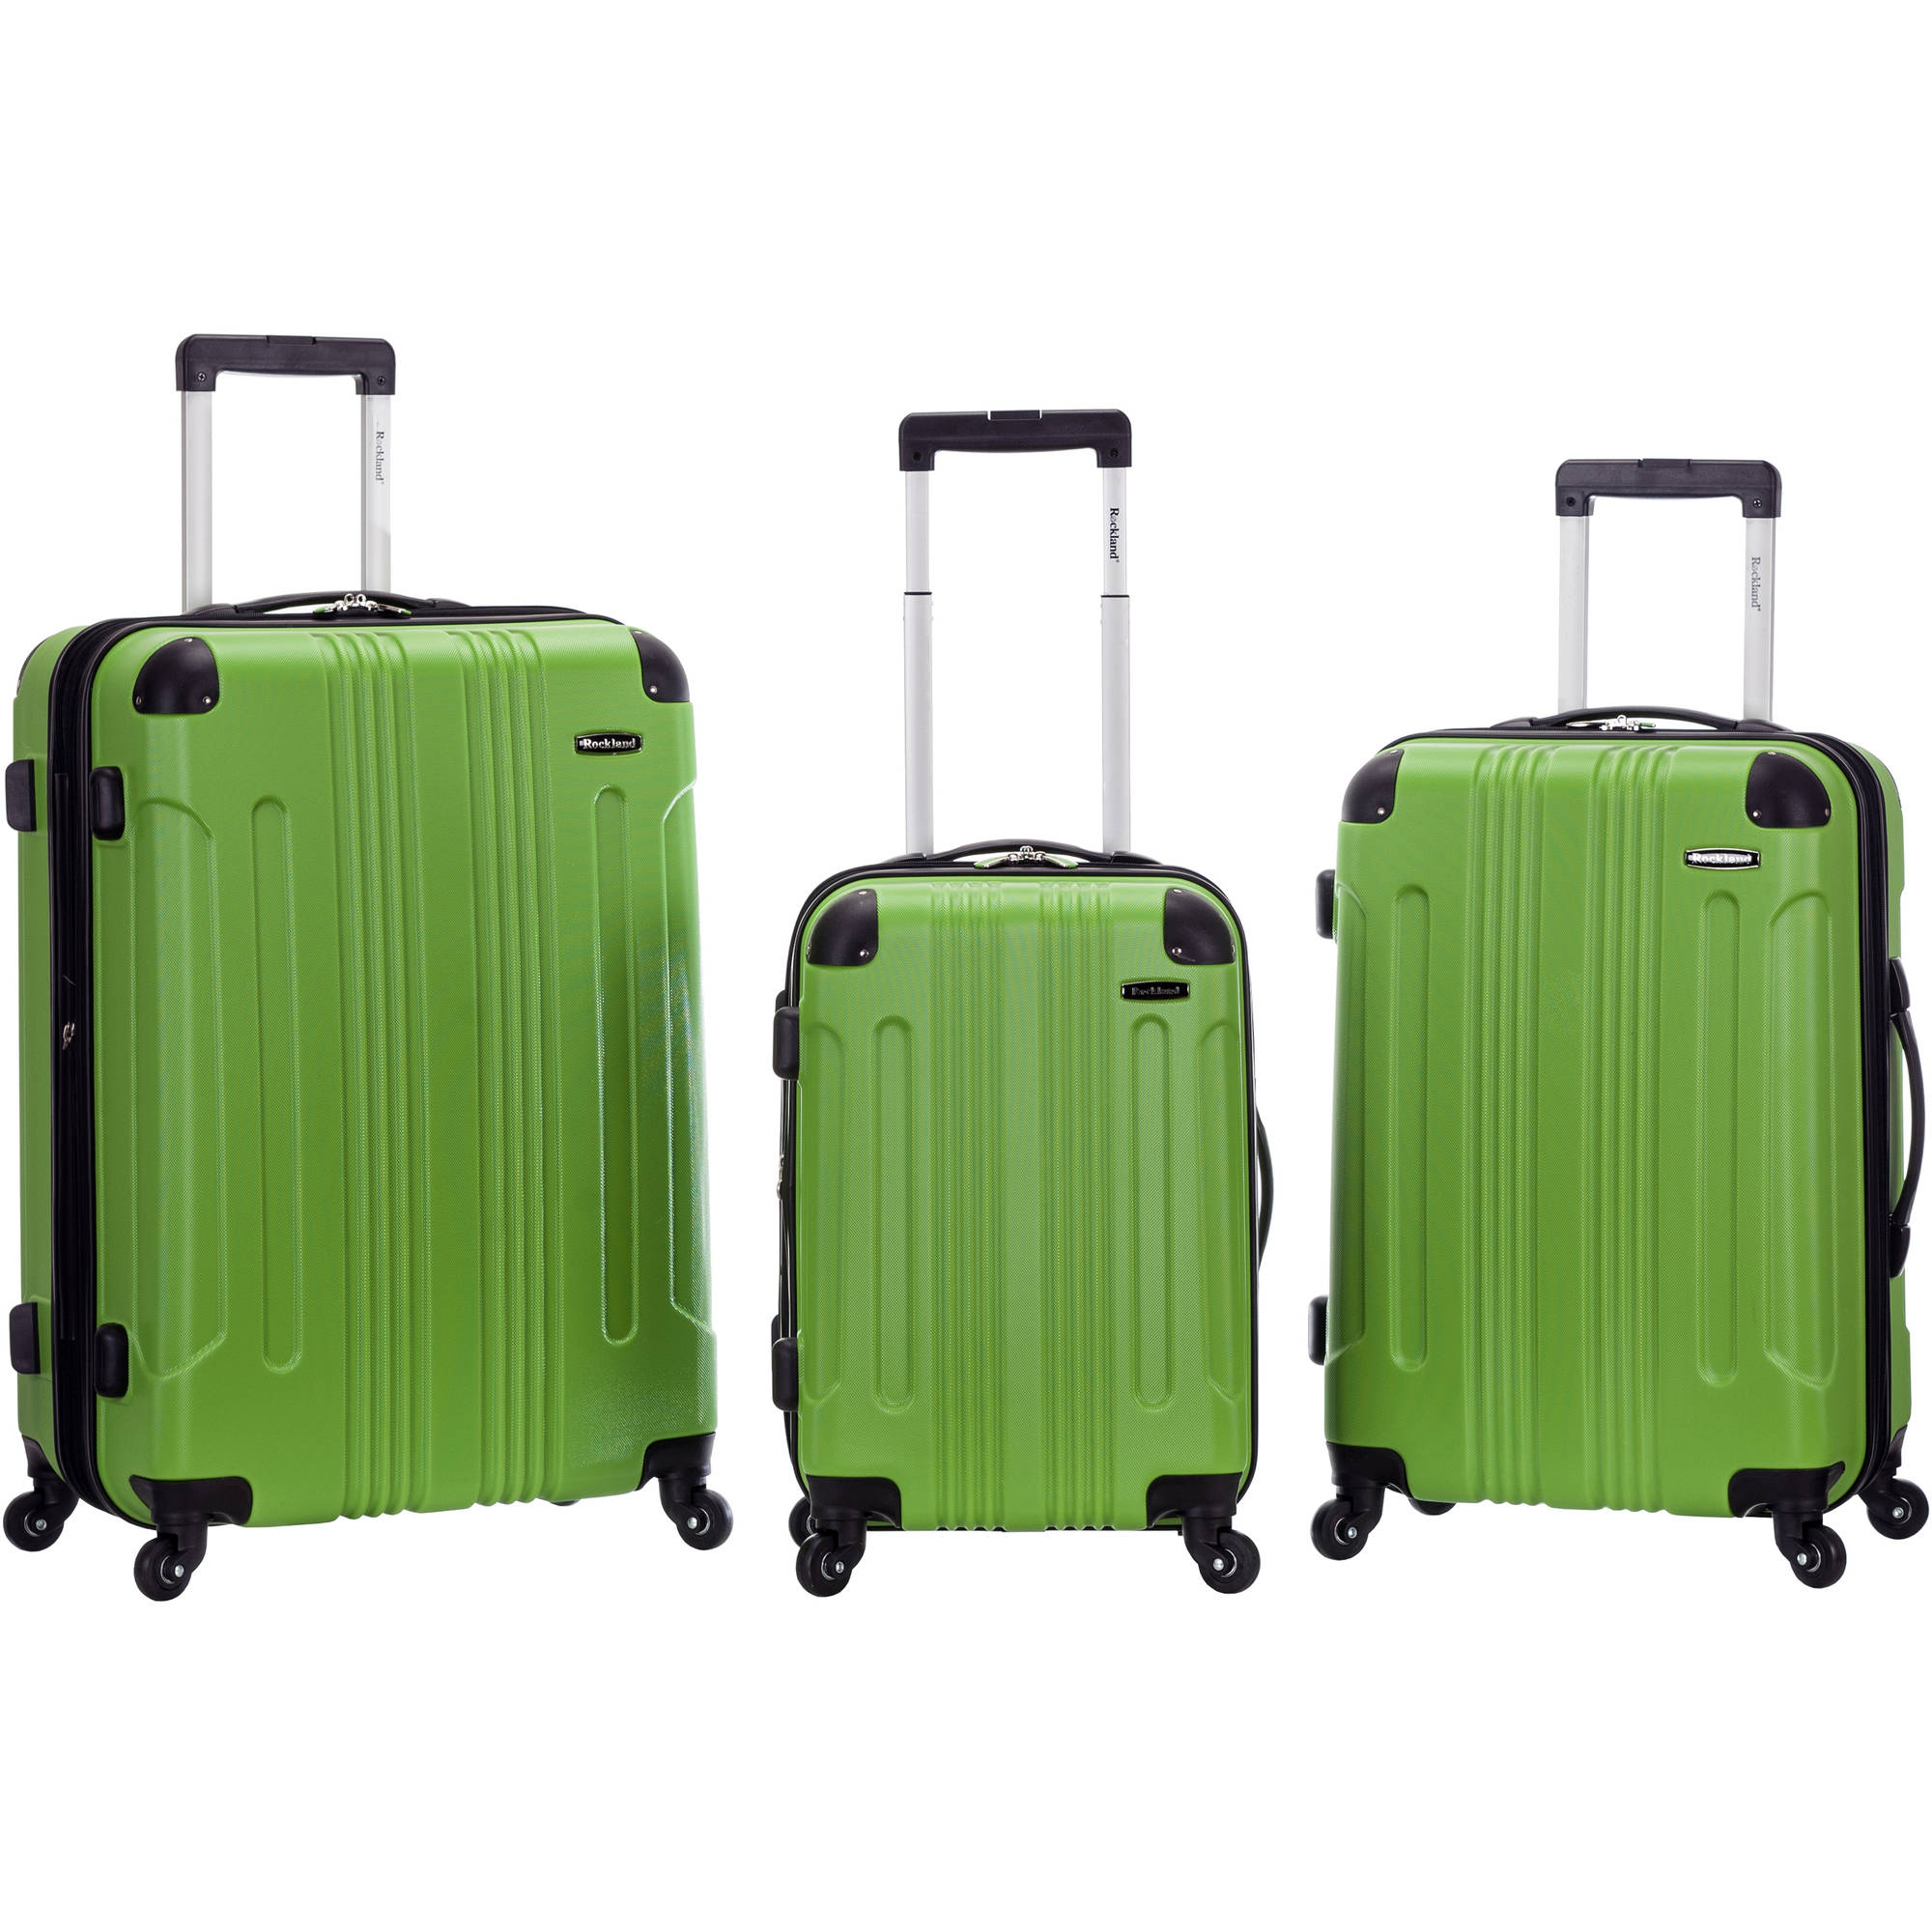 Rockland 3-Piece Sonic ABS Upright Luggage Set